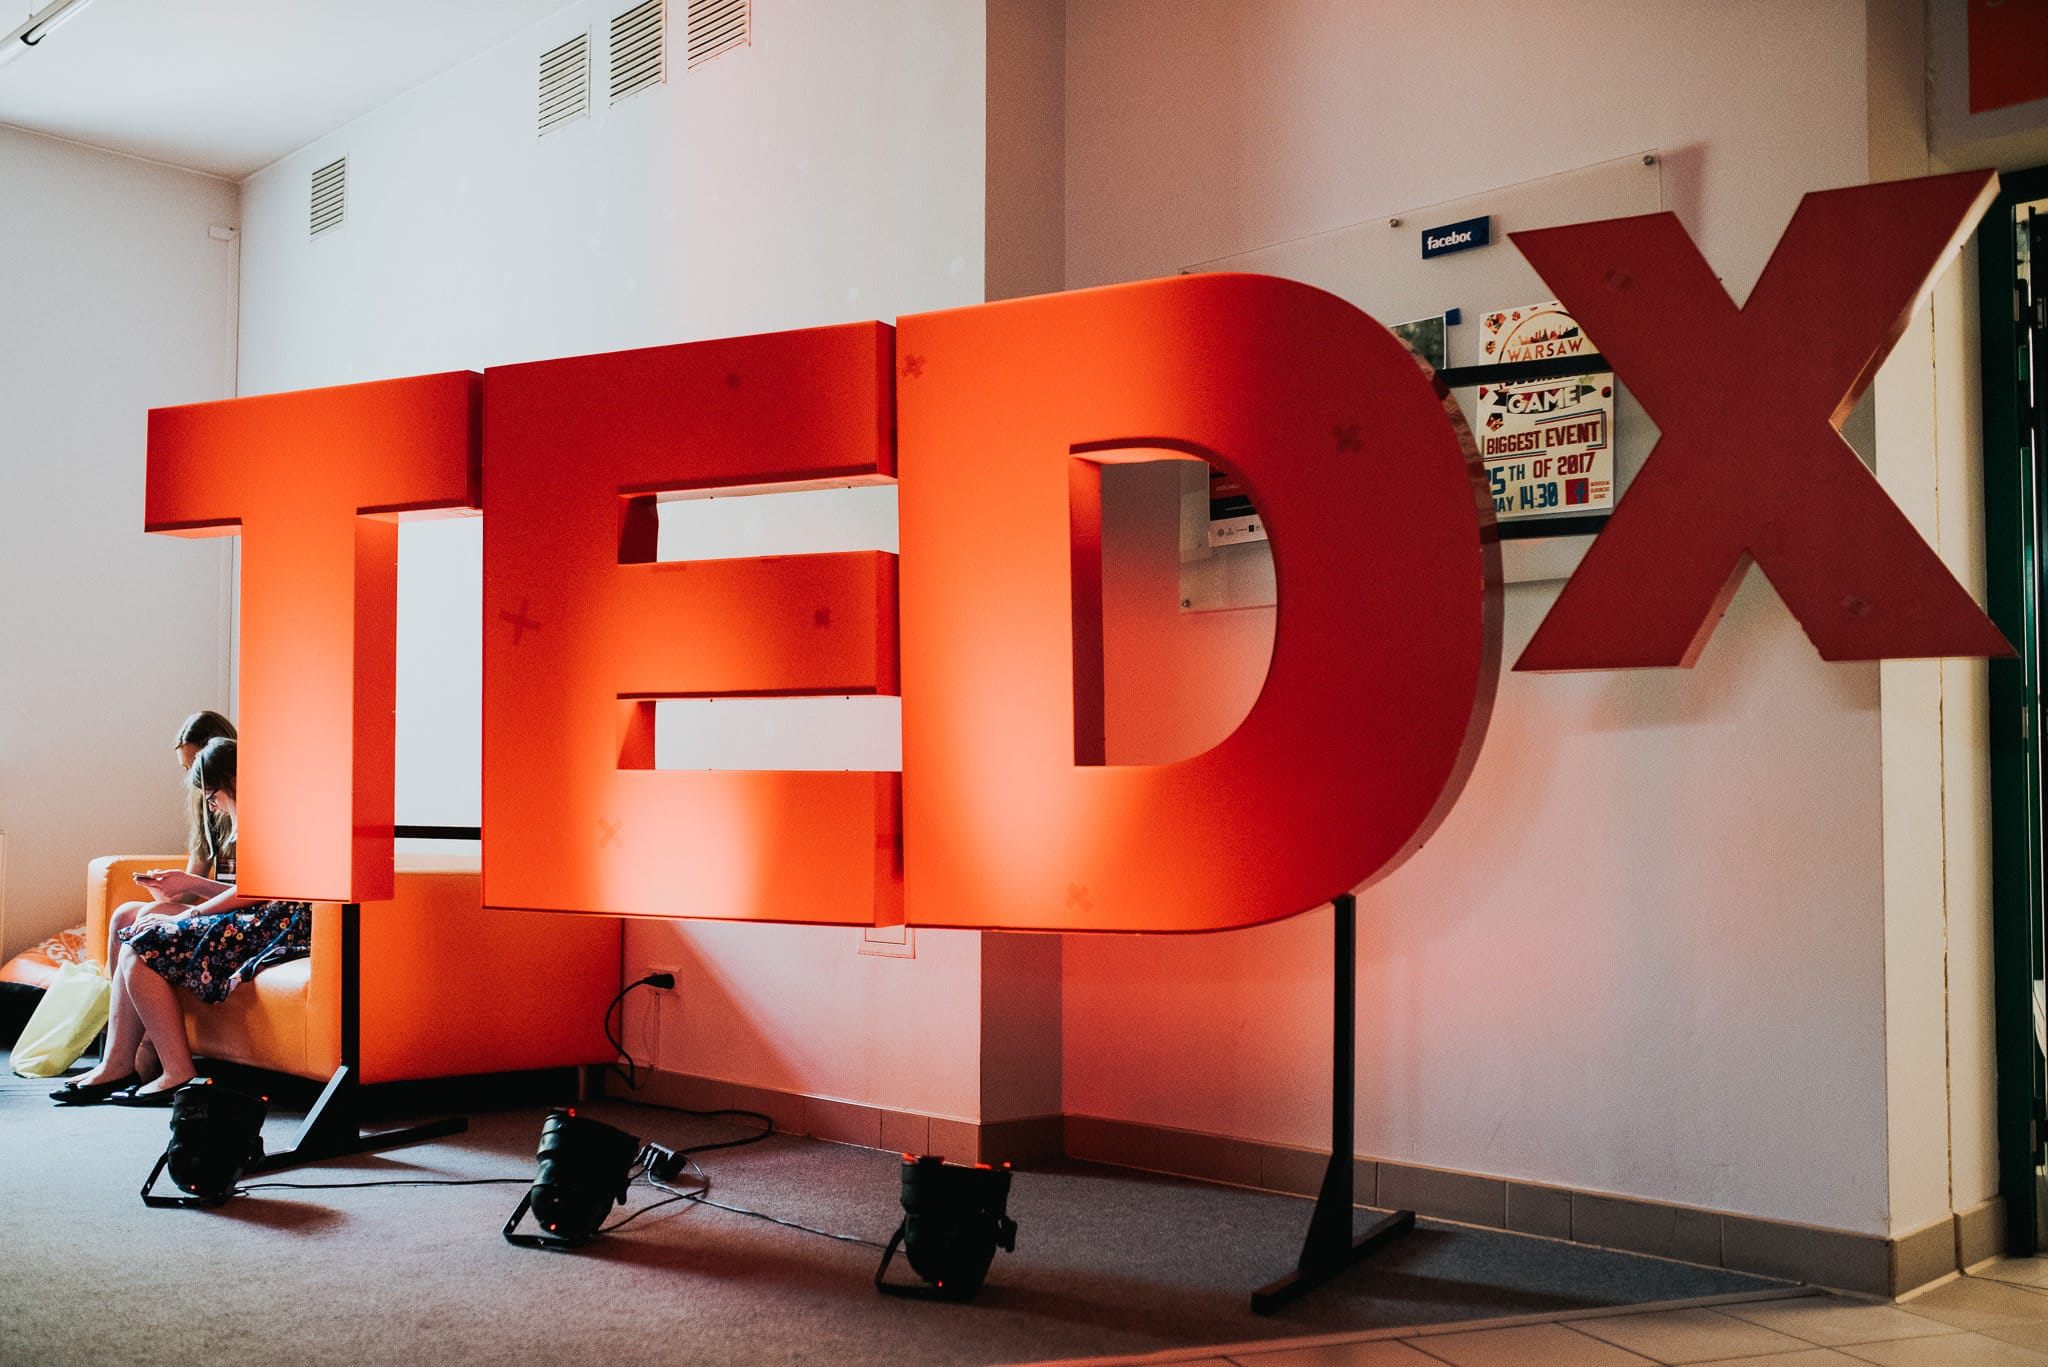 TEDxExeter Announces Line-up For Sold Out Event